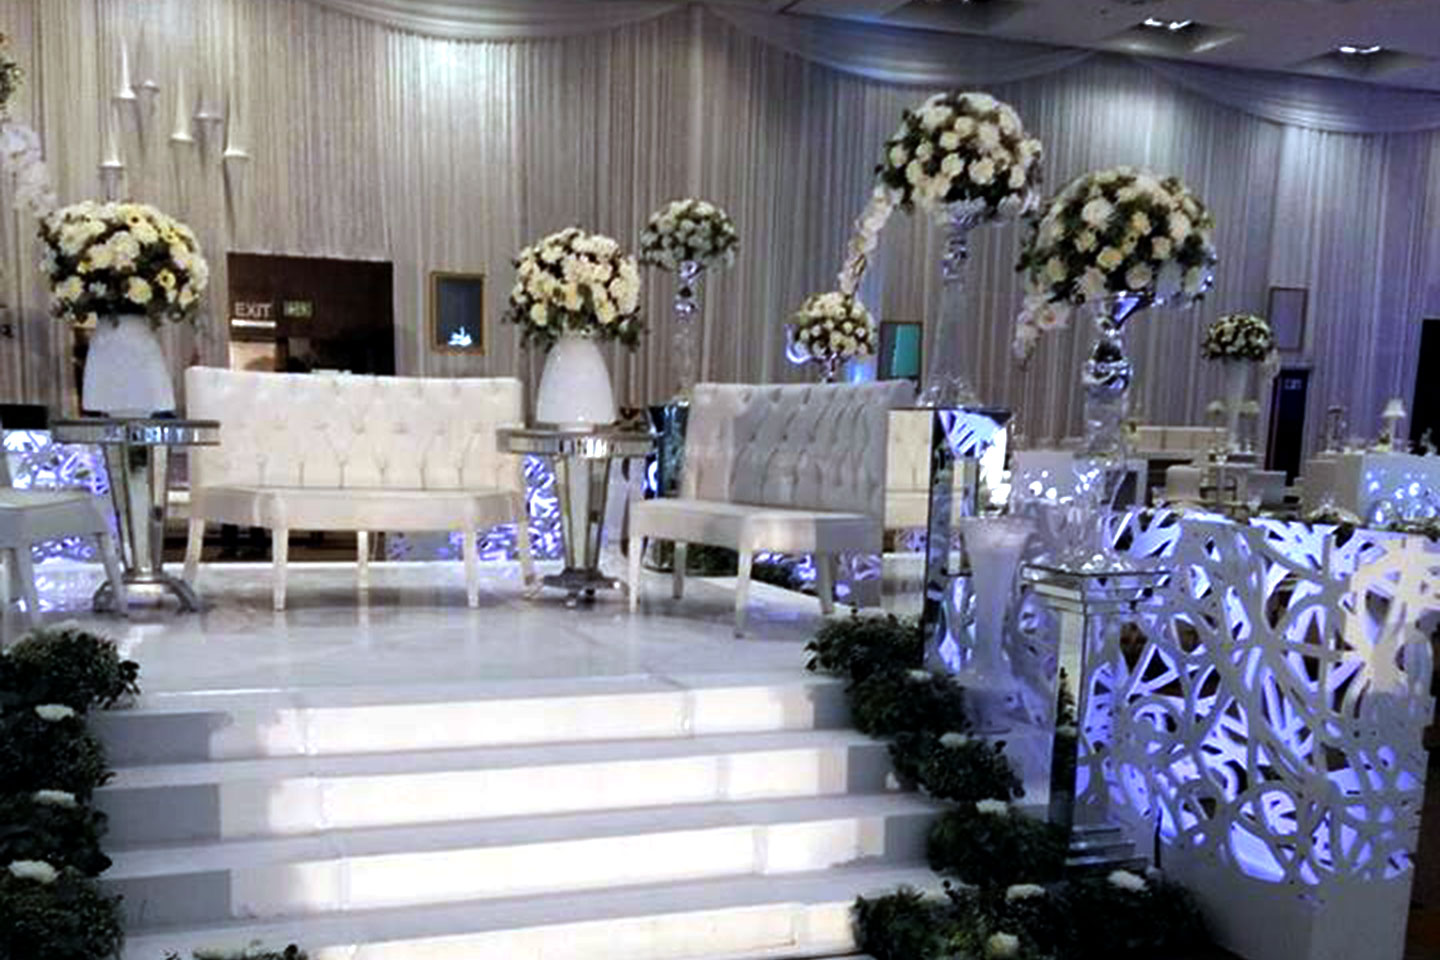 Decor4u corpate and wedding events cape town and johannesburg wedding celebrations junglespirit Choice Image